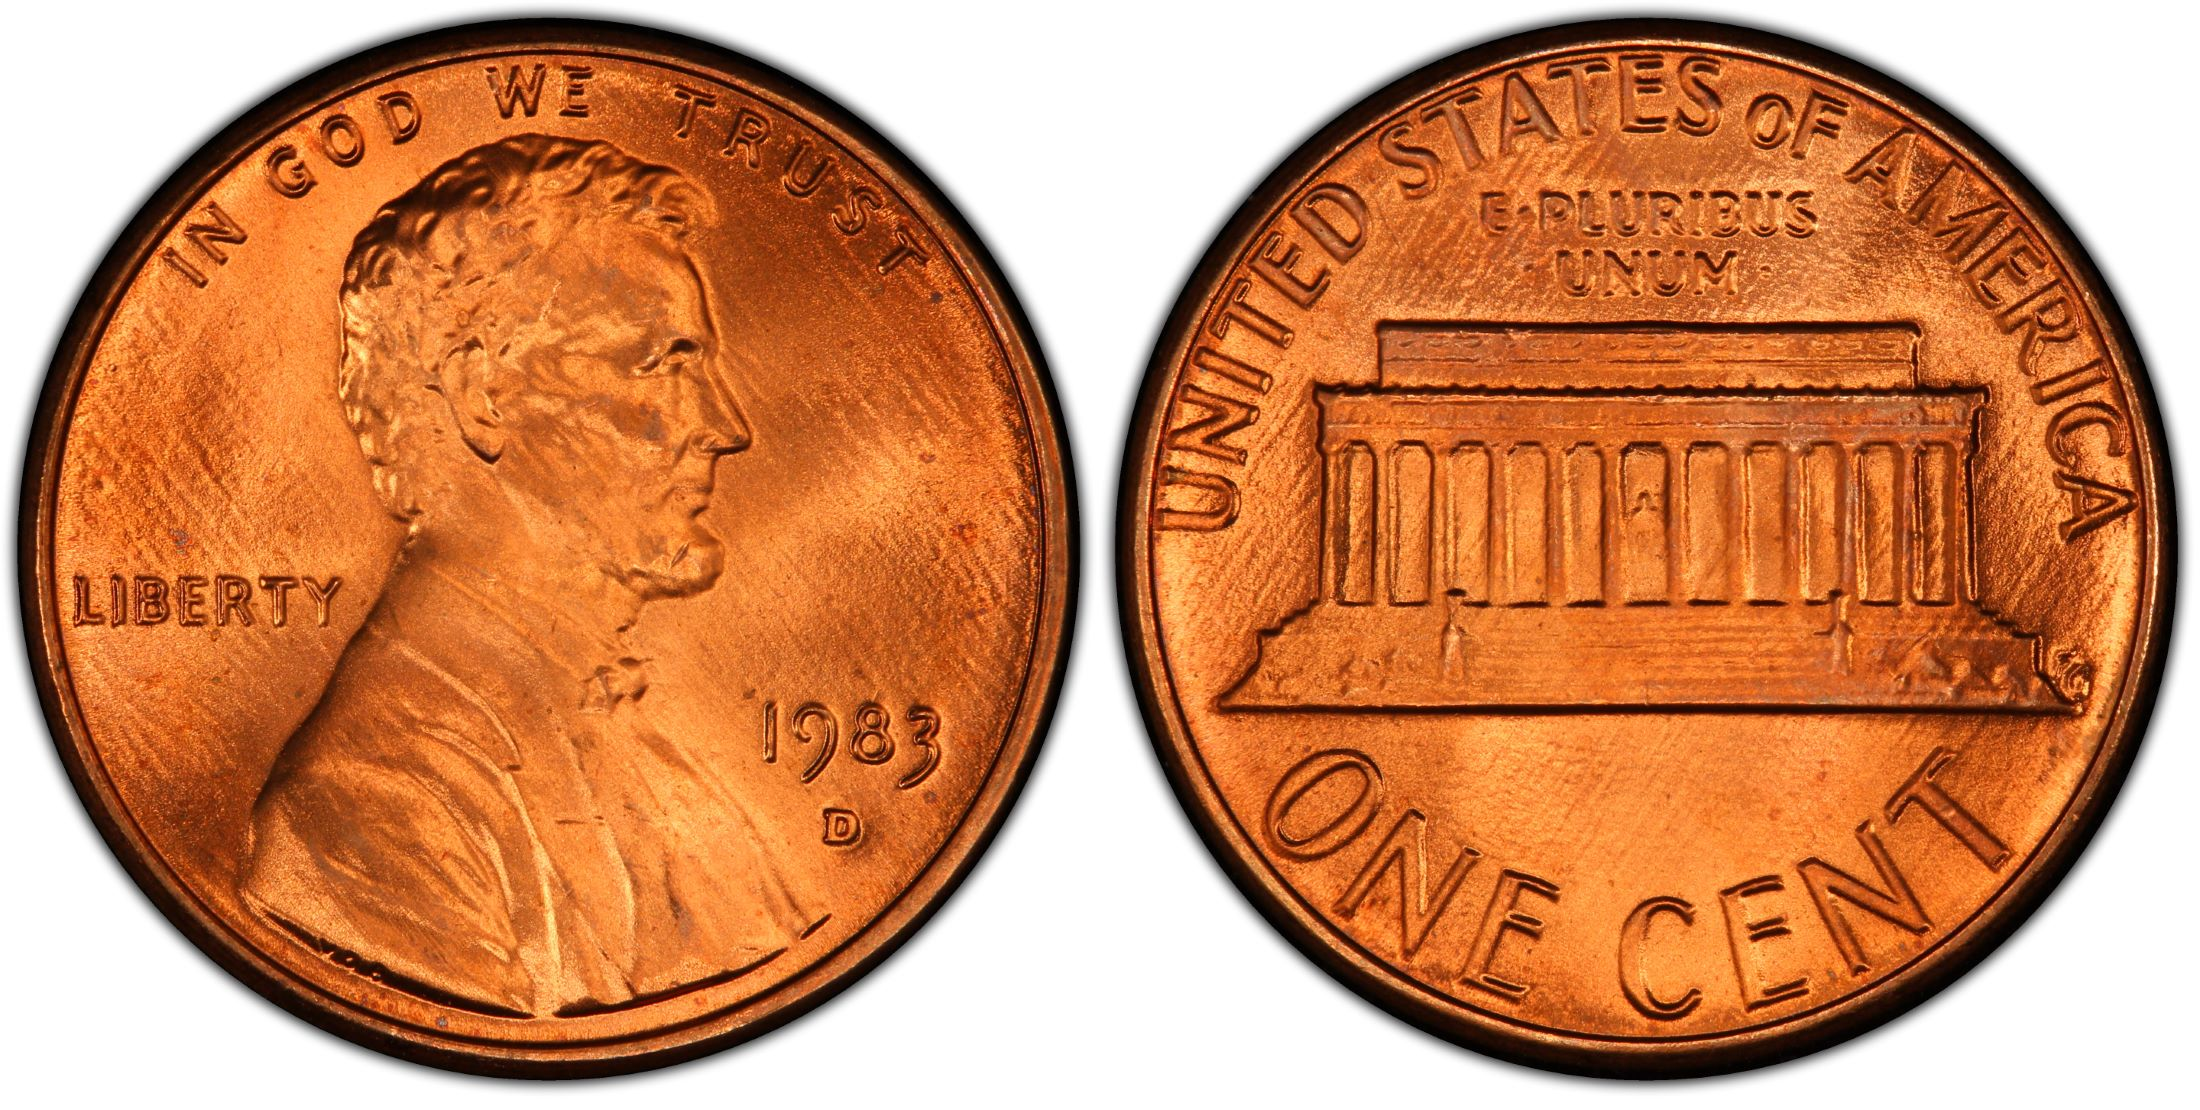 1983 D Lincoln Memorial Cent Choice Penny US Coin